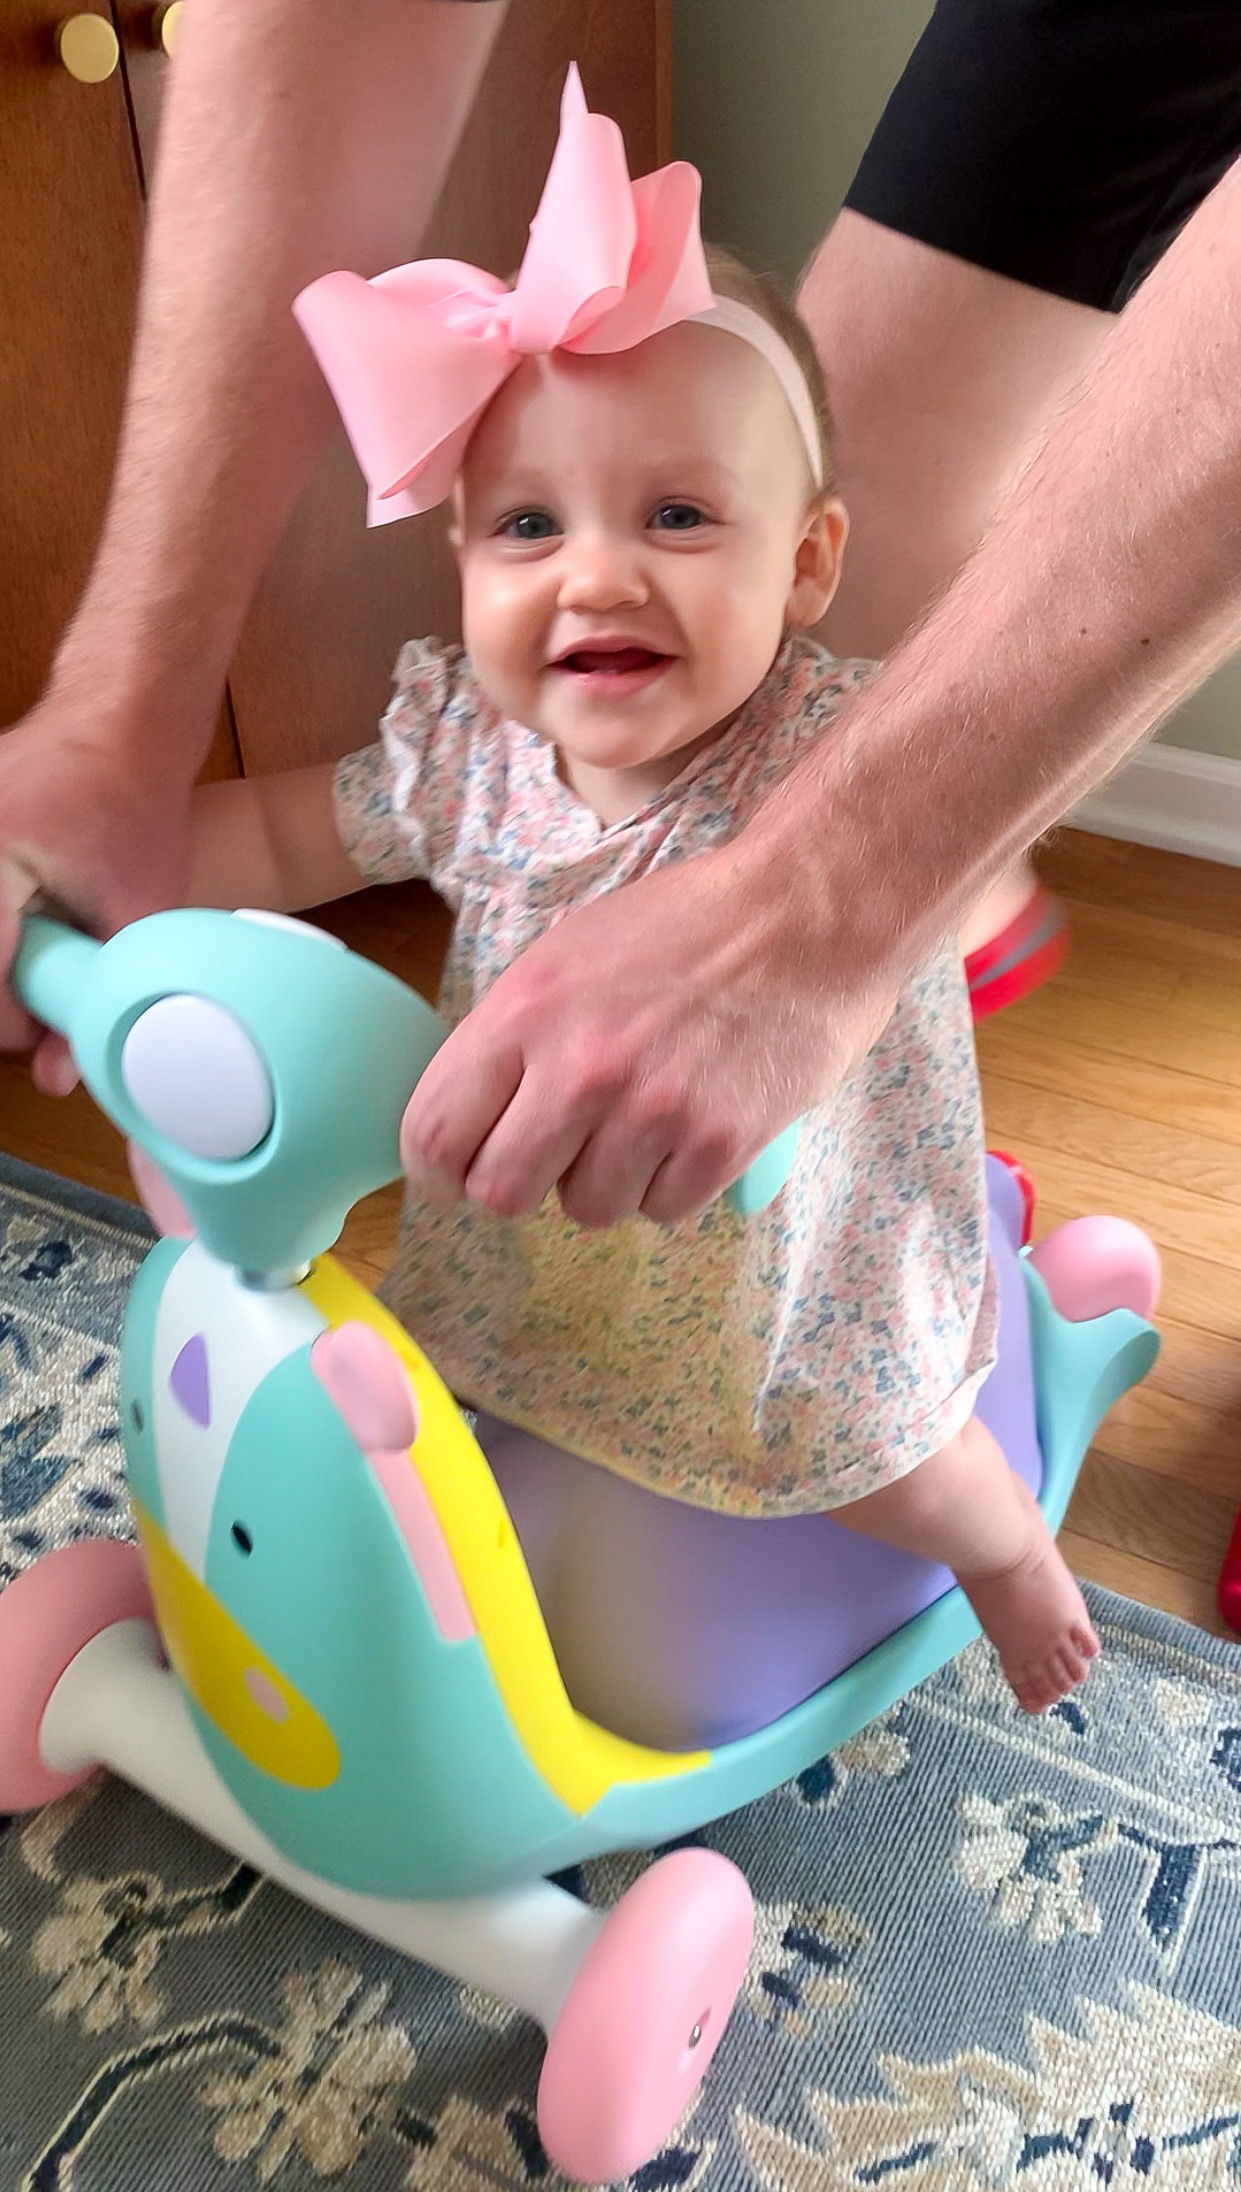 unicorn 3-in-1 scooter, baby's first scooter, best baby toys 2020, best baby gifts 2020